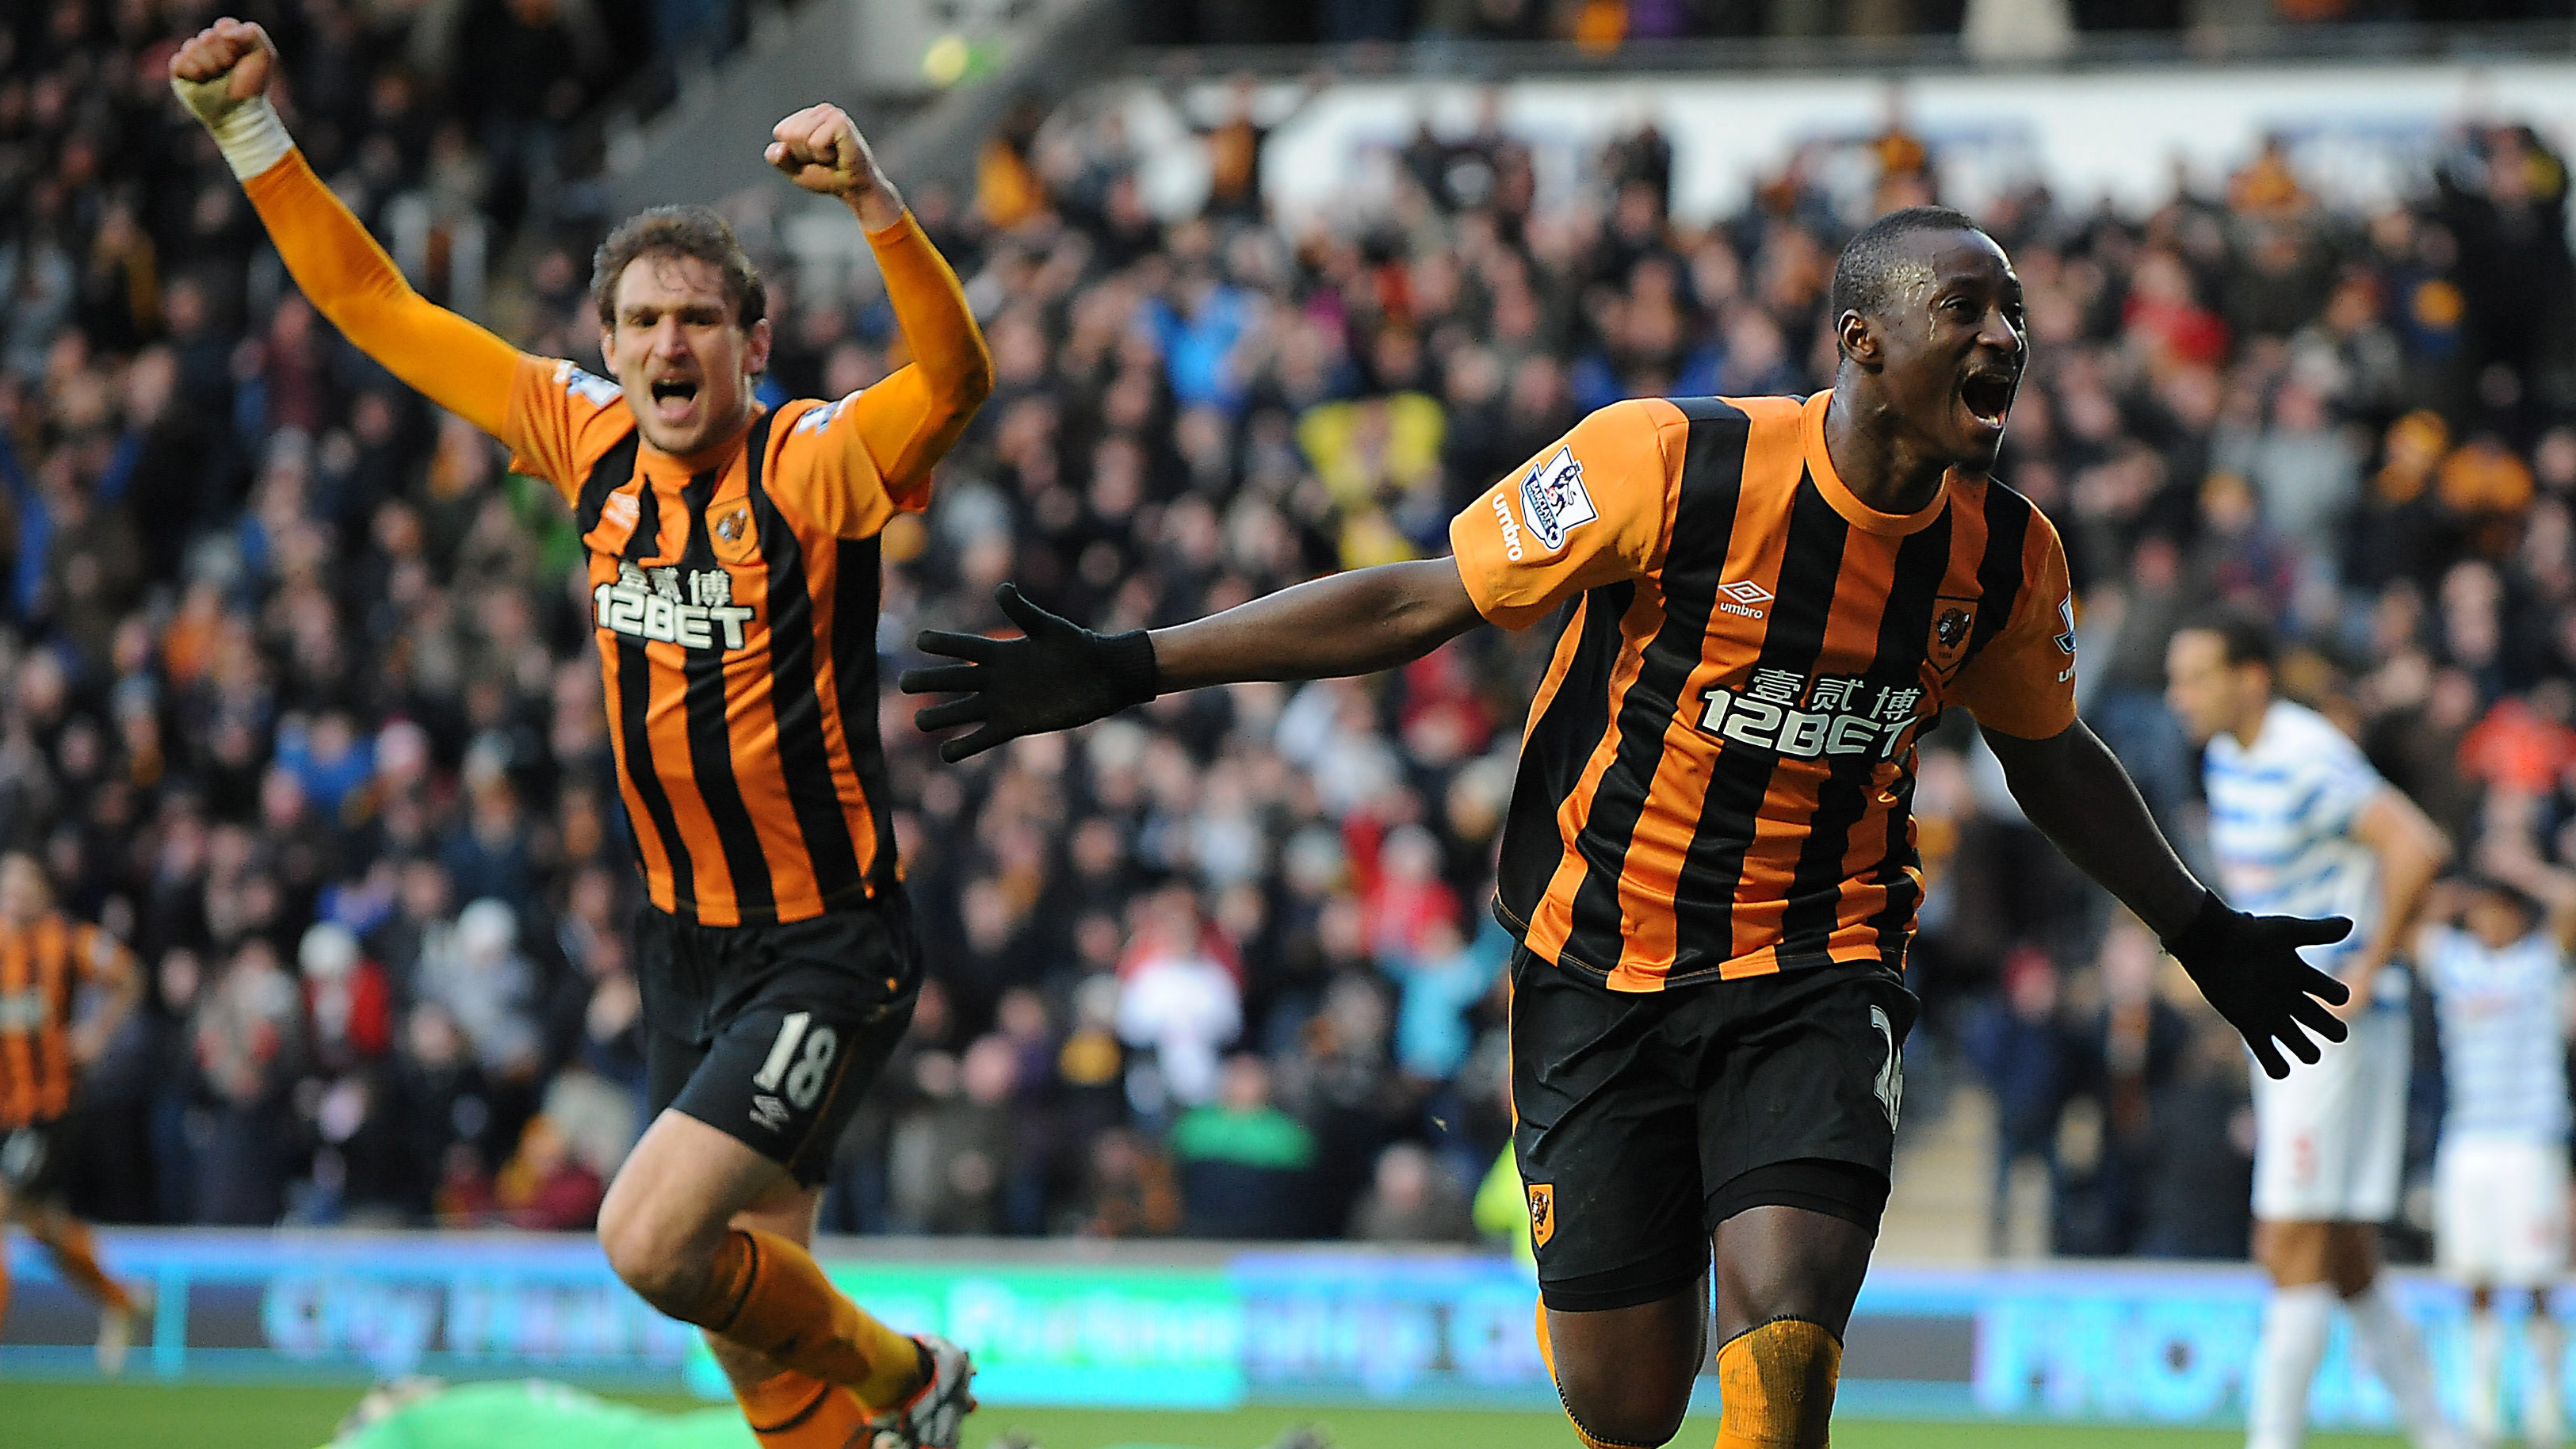 Qpr hull betting online 888 sport betting review